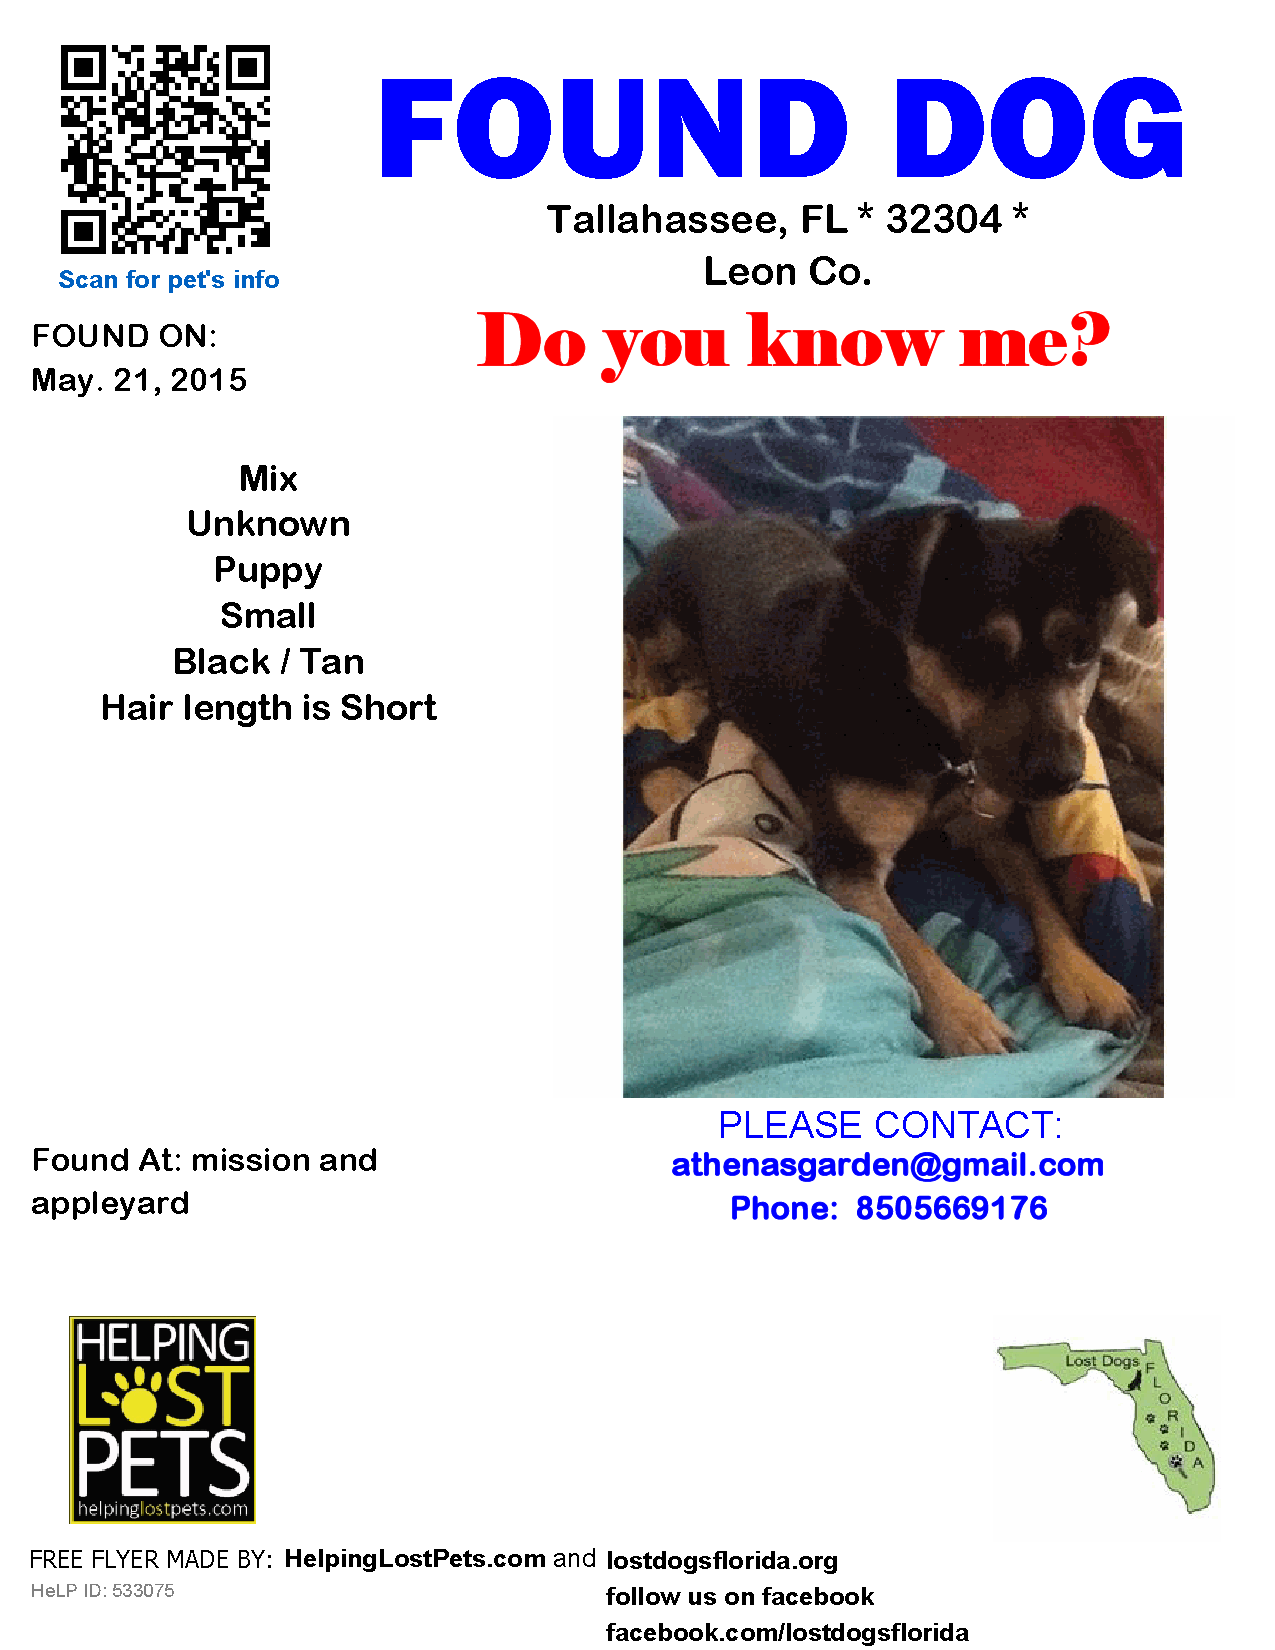 Found Dog Mix Tallahassee Fl United States Dog Mixes Losing A Dog Small Puppies